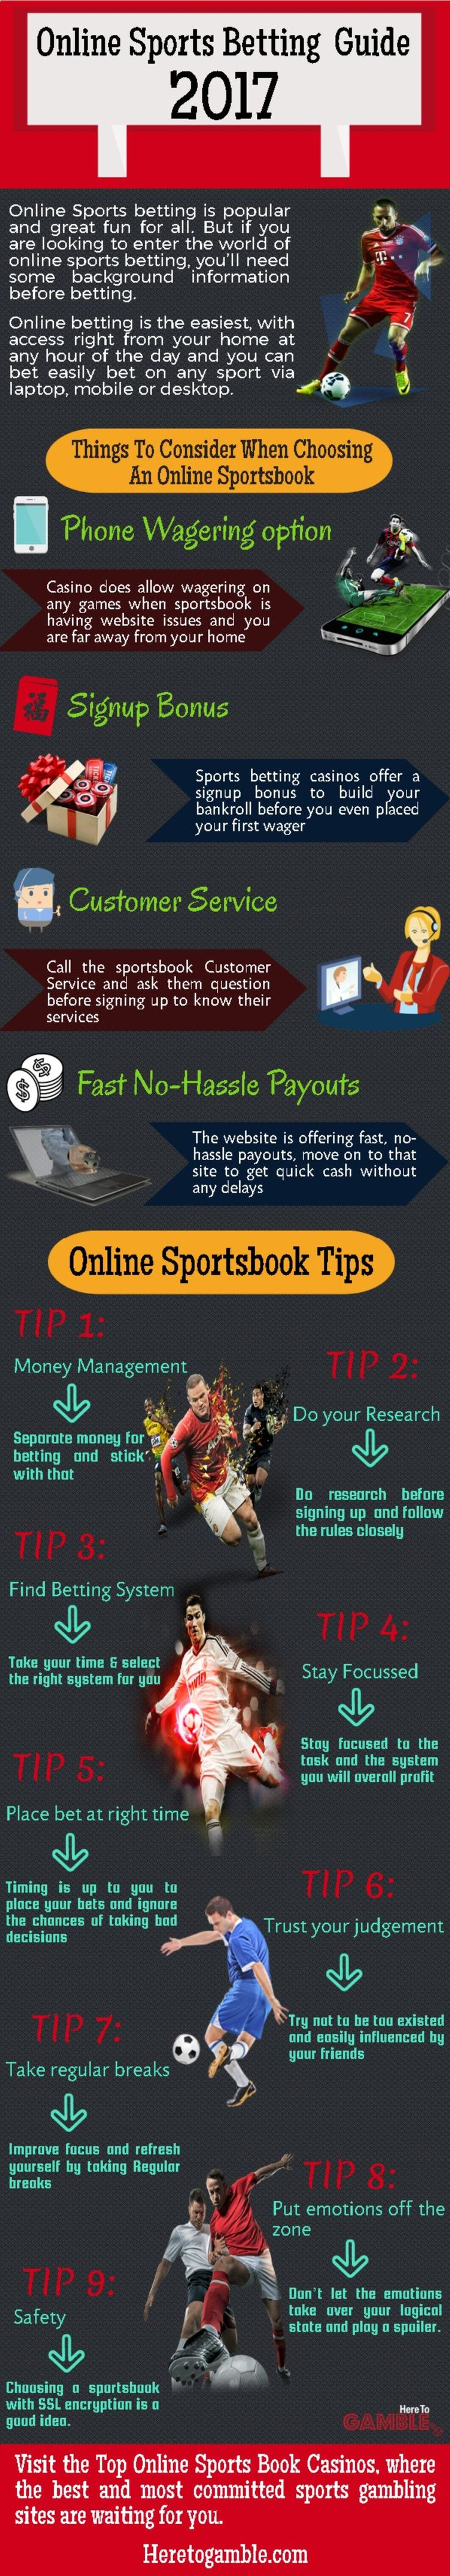 Free Betting Tips Tips for Betting - Online Sports Betting Guide - 2017 Receive Free Betting Tips from Our Pro Tipsters Join Over 76,000 Punters who Receive Daily Tips and Previews from Professional Tipsters for FREE Receive Free Betting Tips from Our Pro Tipsters Join Over 76,000 Punters who Receive Daily Tips and Previews from Professional Tipsters for FREE